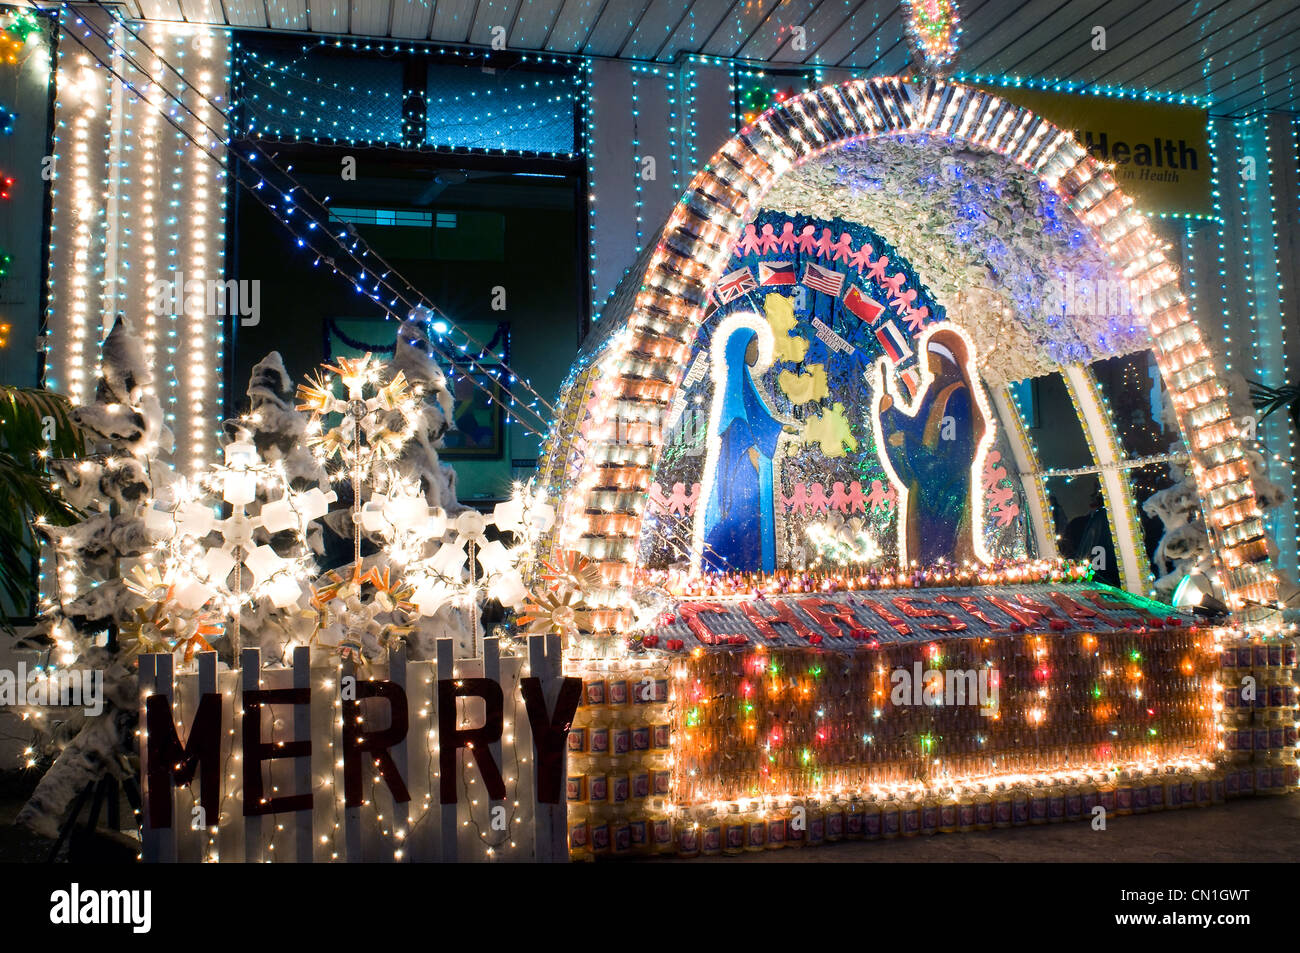 Crib for sale in cebu - Christmas Crib Downtown Cebu Philippines Stock Image